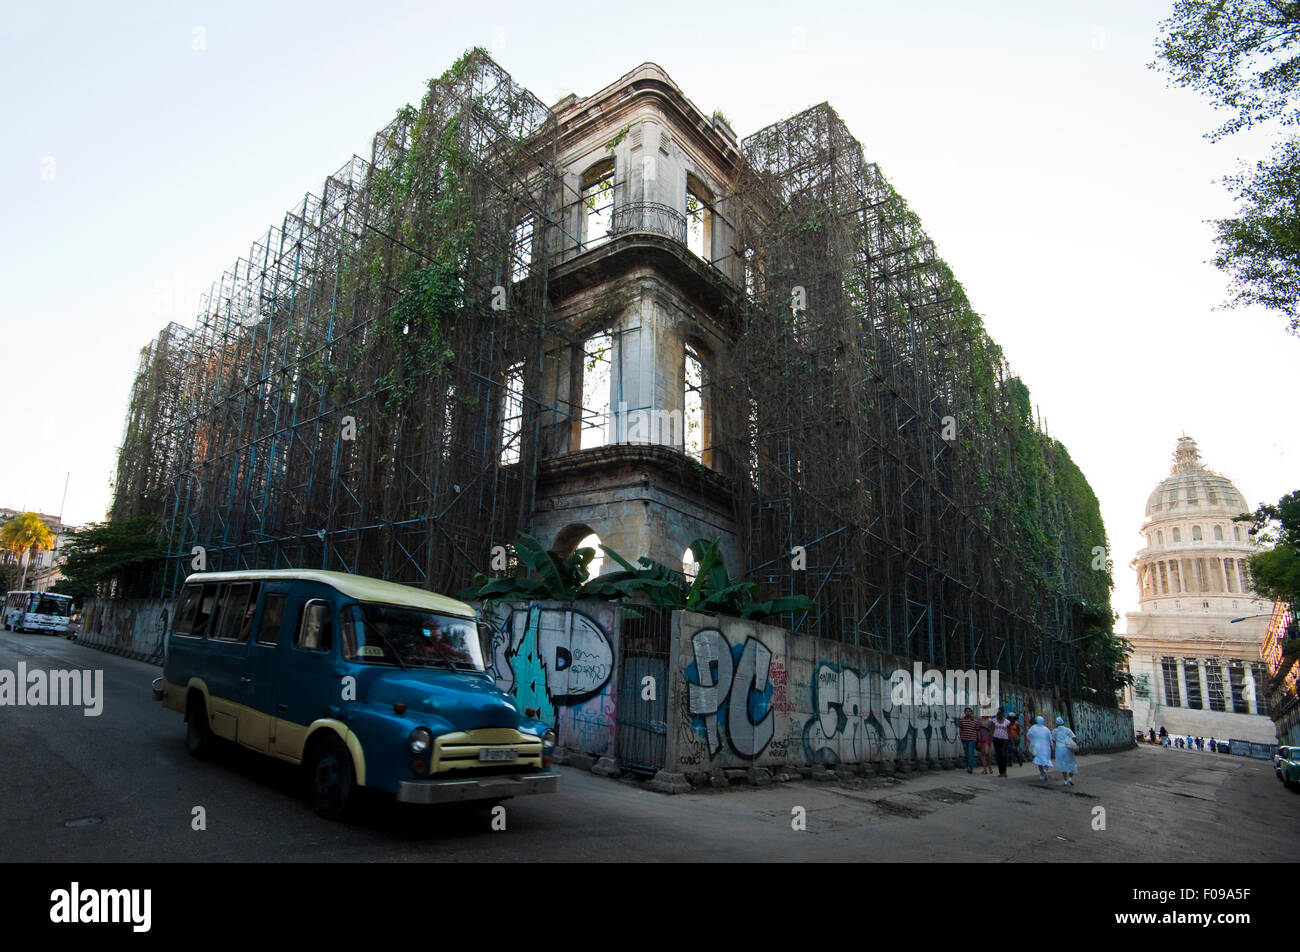 Horizontal street view of the dilapidated Hotel Revolution building held up with scaffolding in Havana, Cuba. - Stock Image